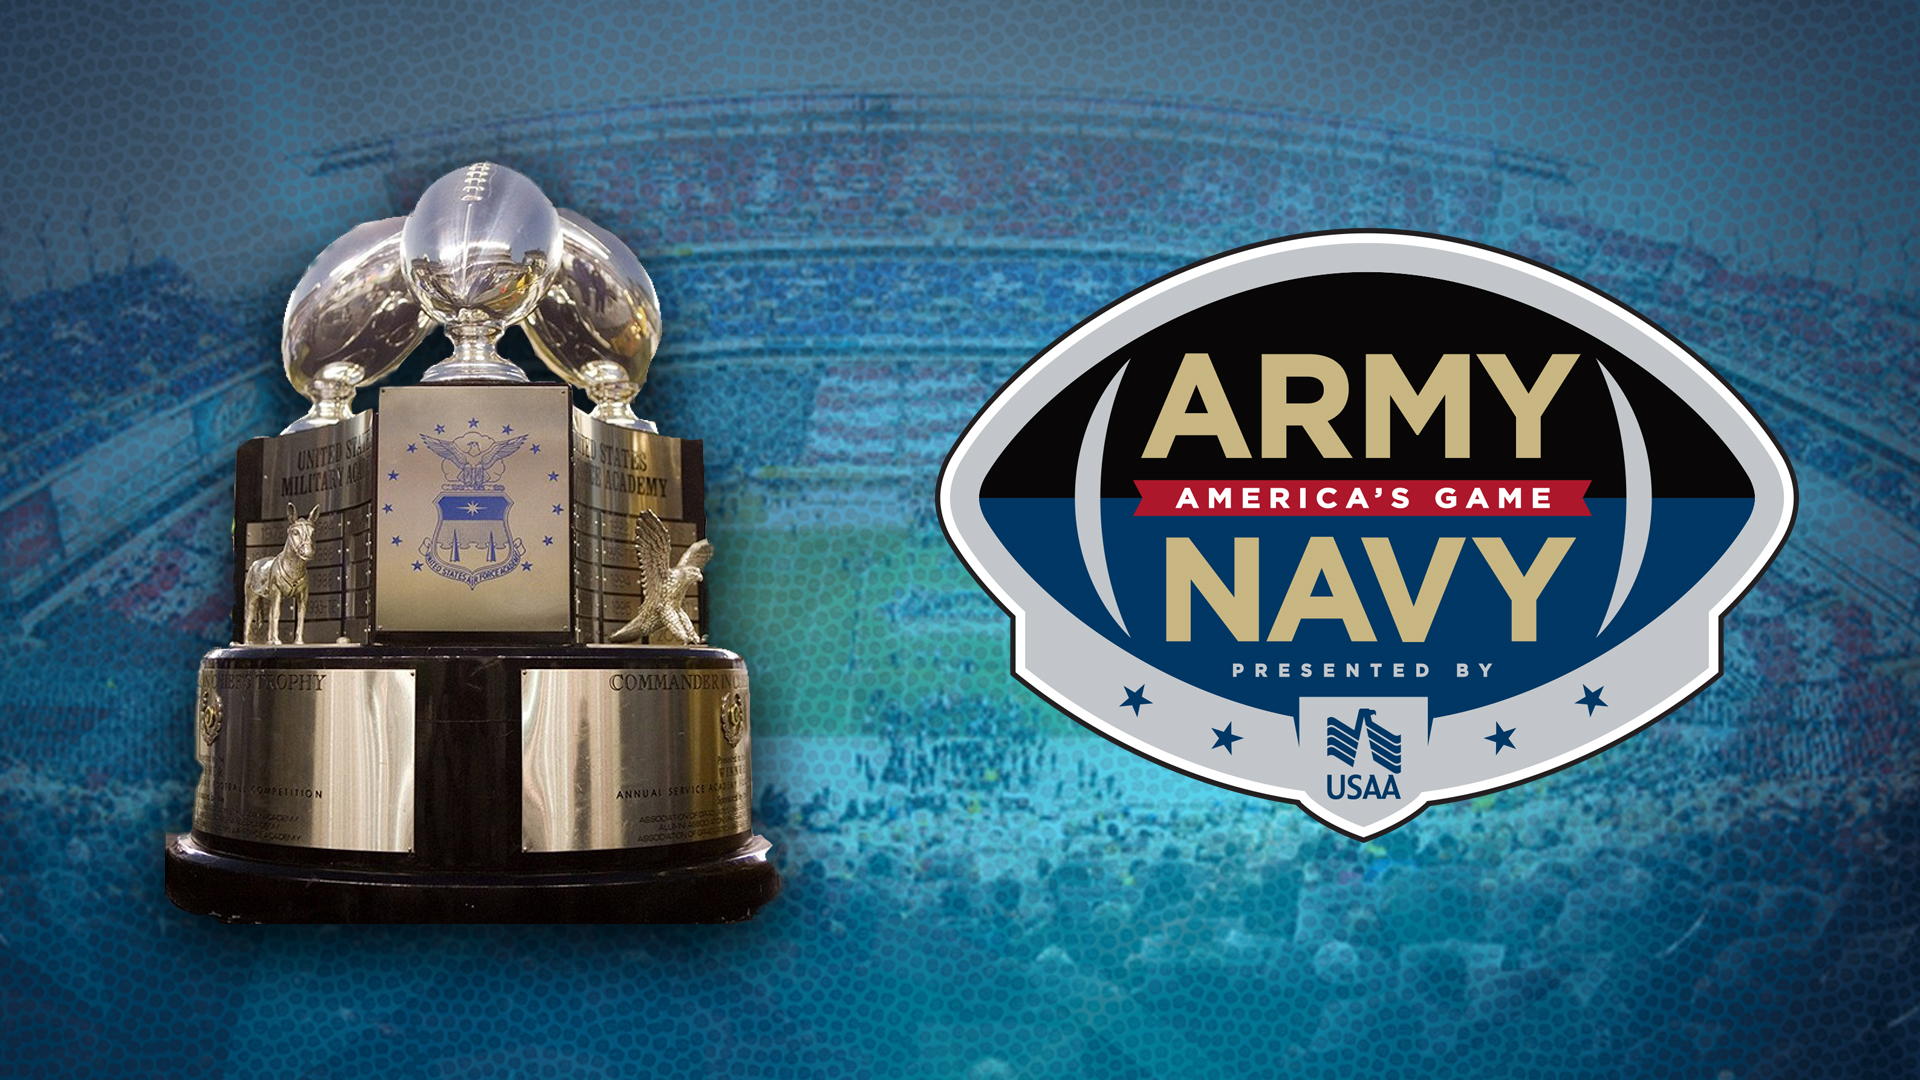 Army and Navy to Battle for CIC Trophy